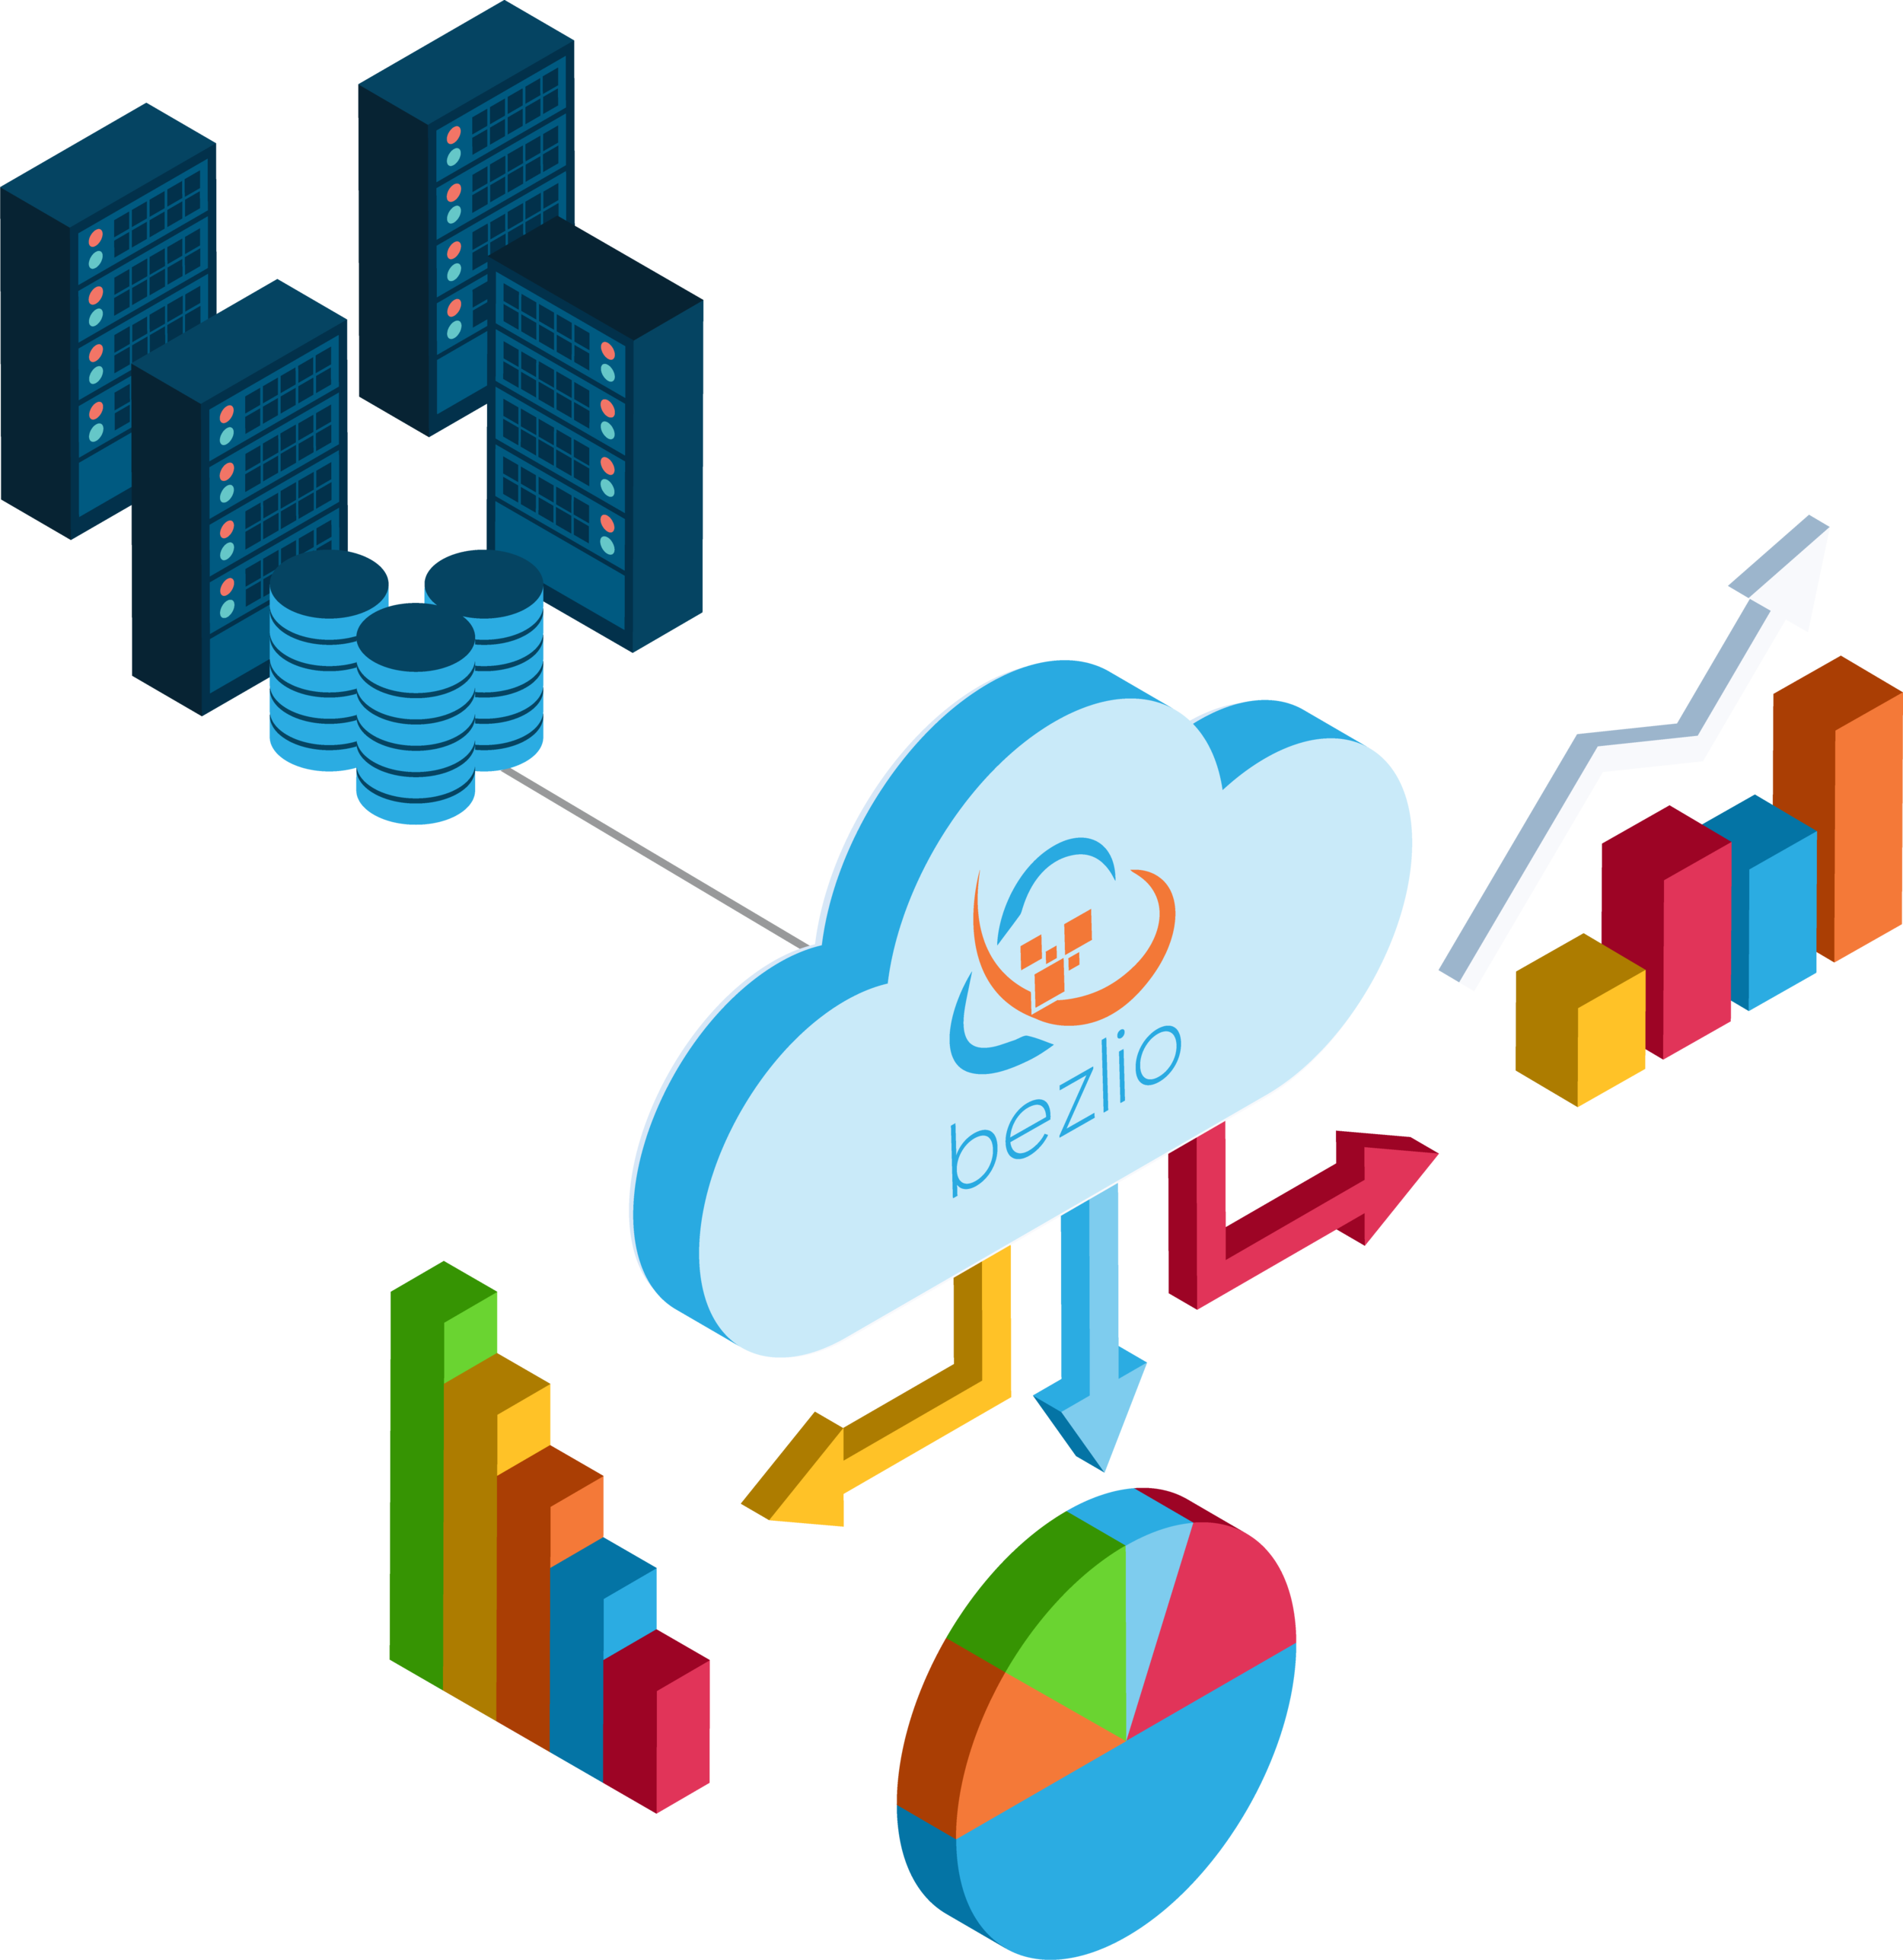 An isometric illustration of how Bezlio works as a mobile application development platform by working with your on-premises data sources and connecting to you mobile devices in real-time.